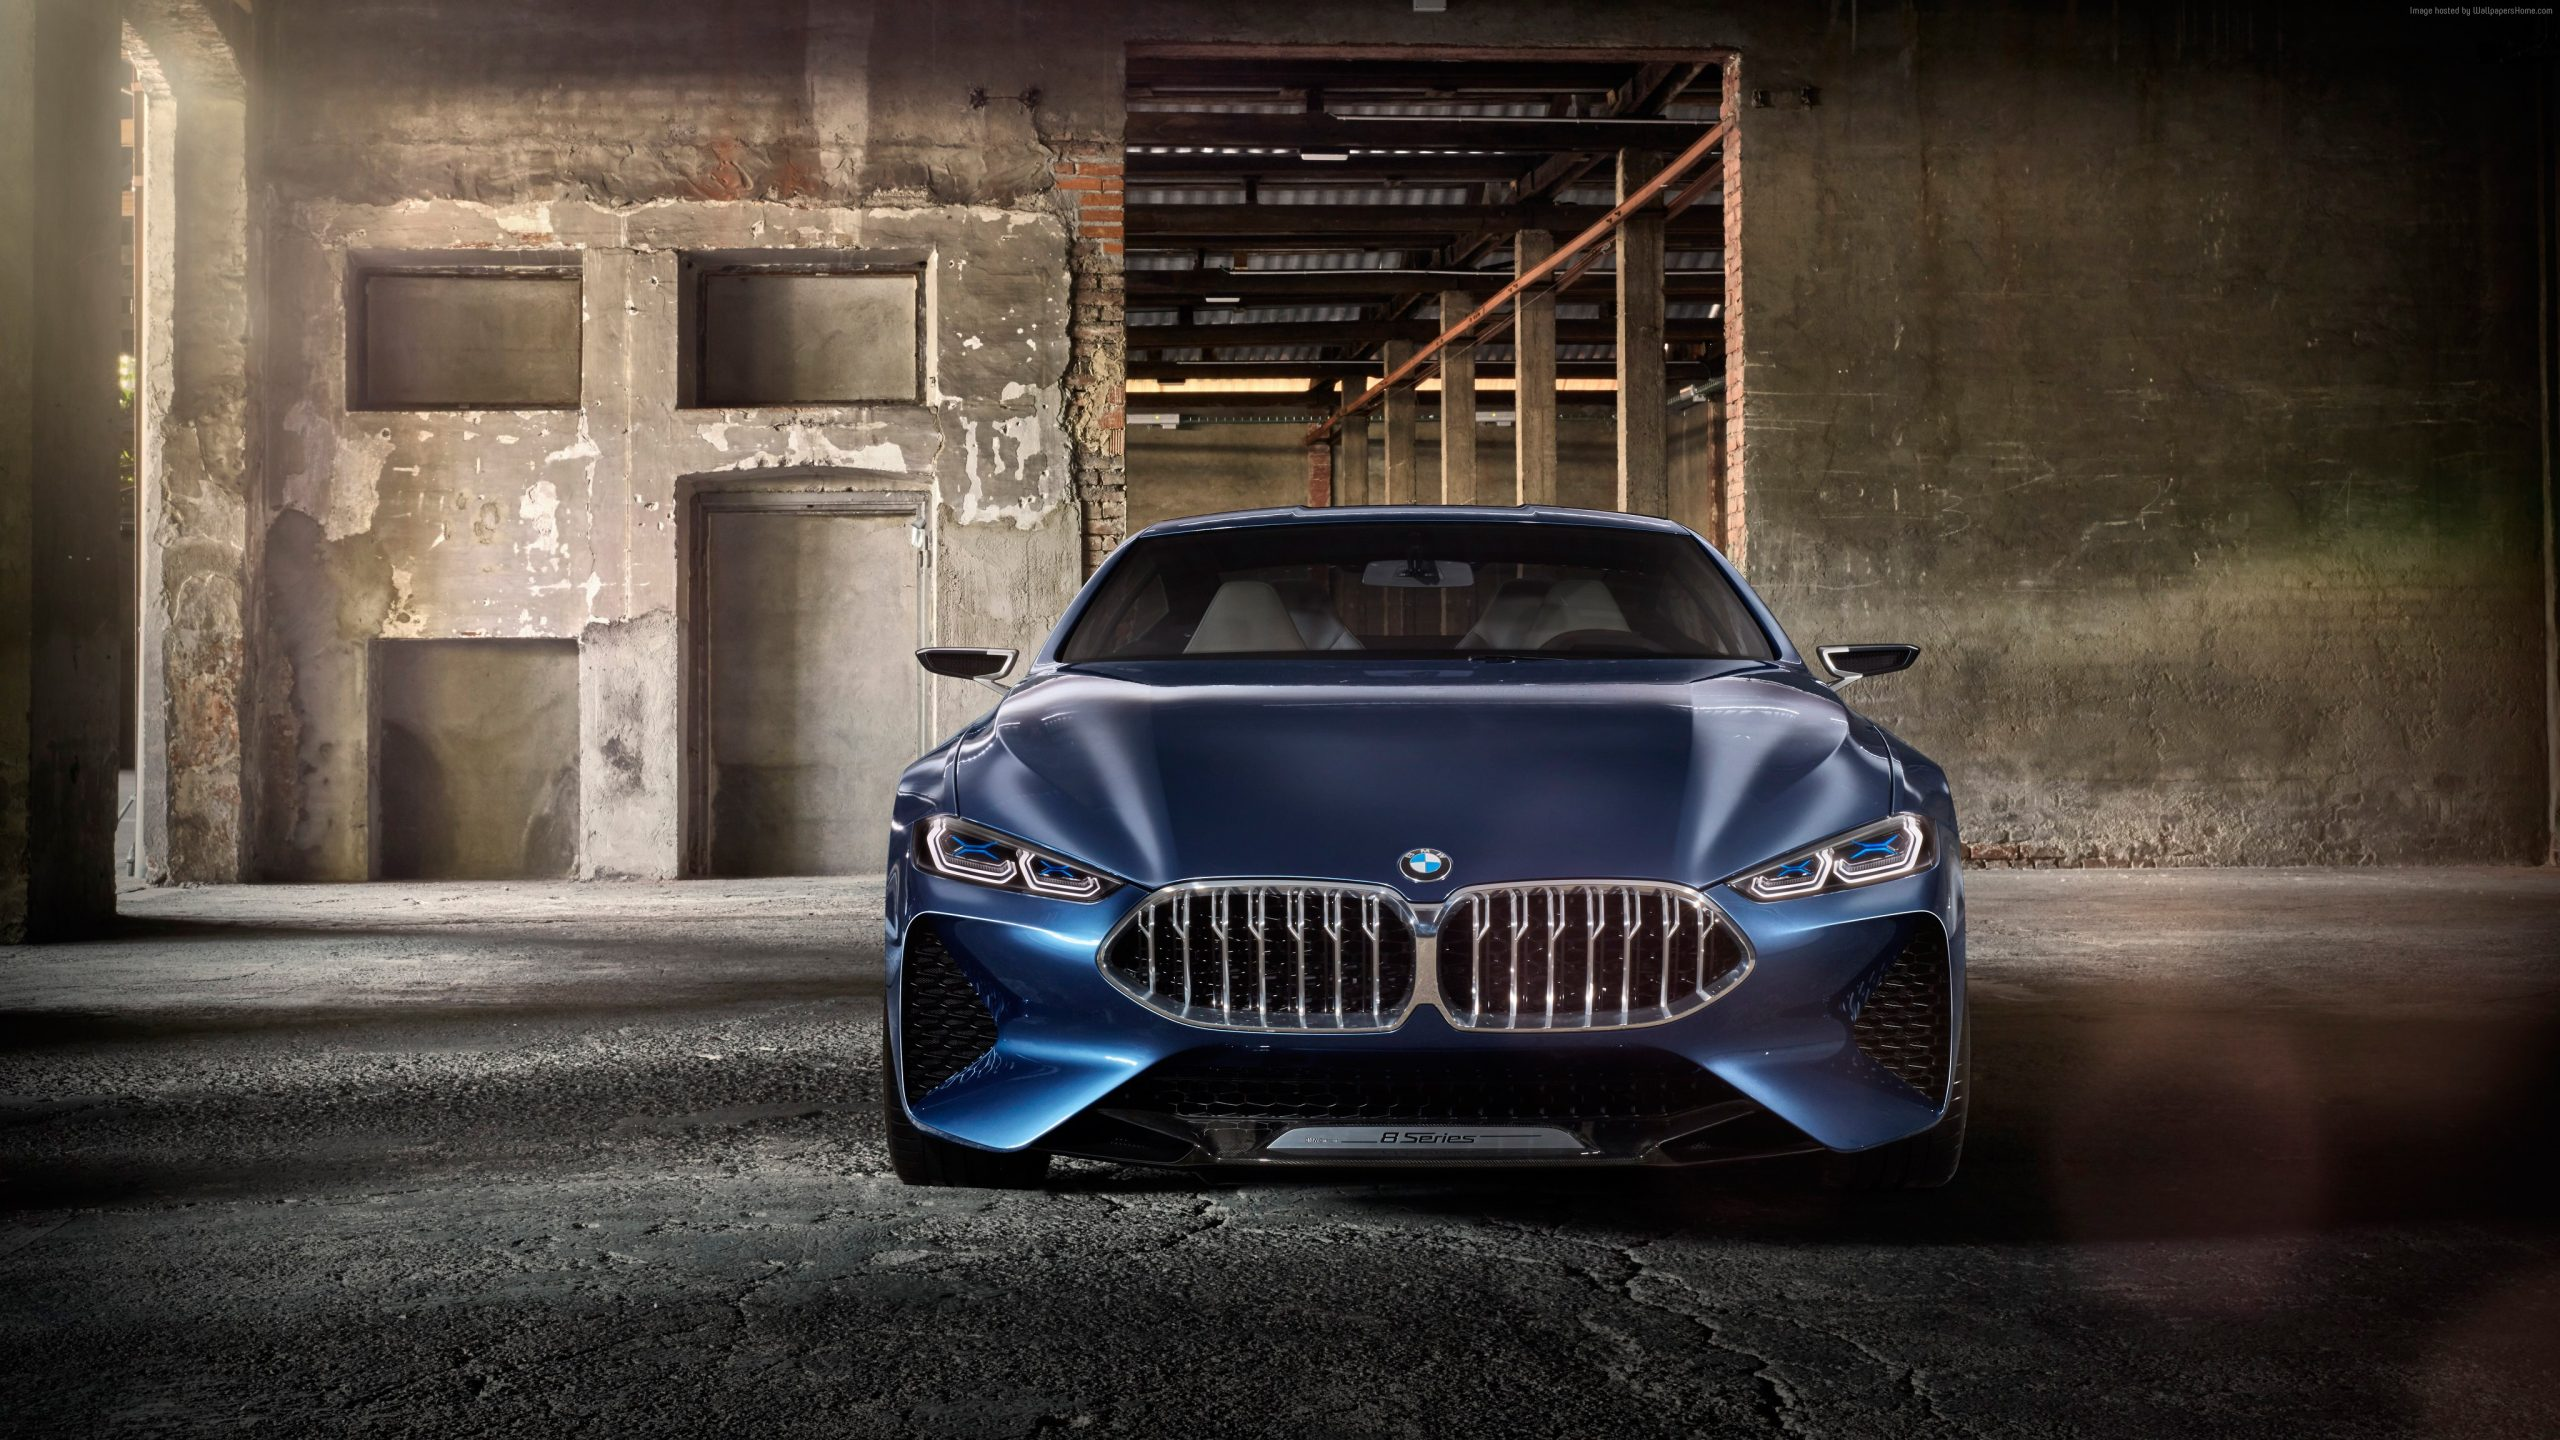 Bmw 8 Series Cars 4k Ultra High Definition Wallpapers Hd Wallpapers Hd Backgrounds Tumblr Backgrounds Images Pictures